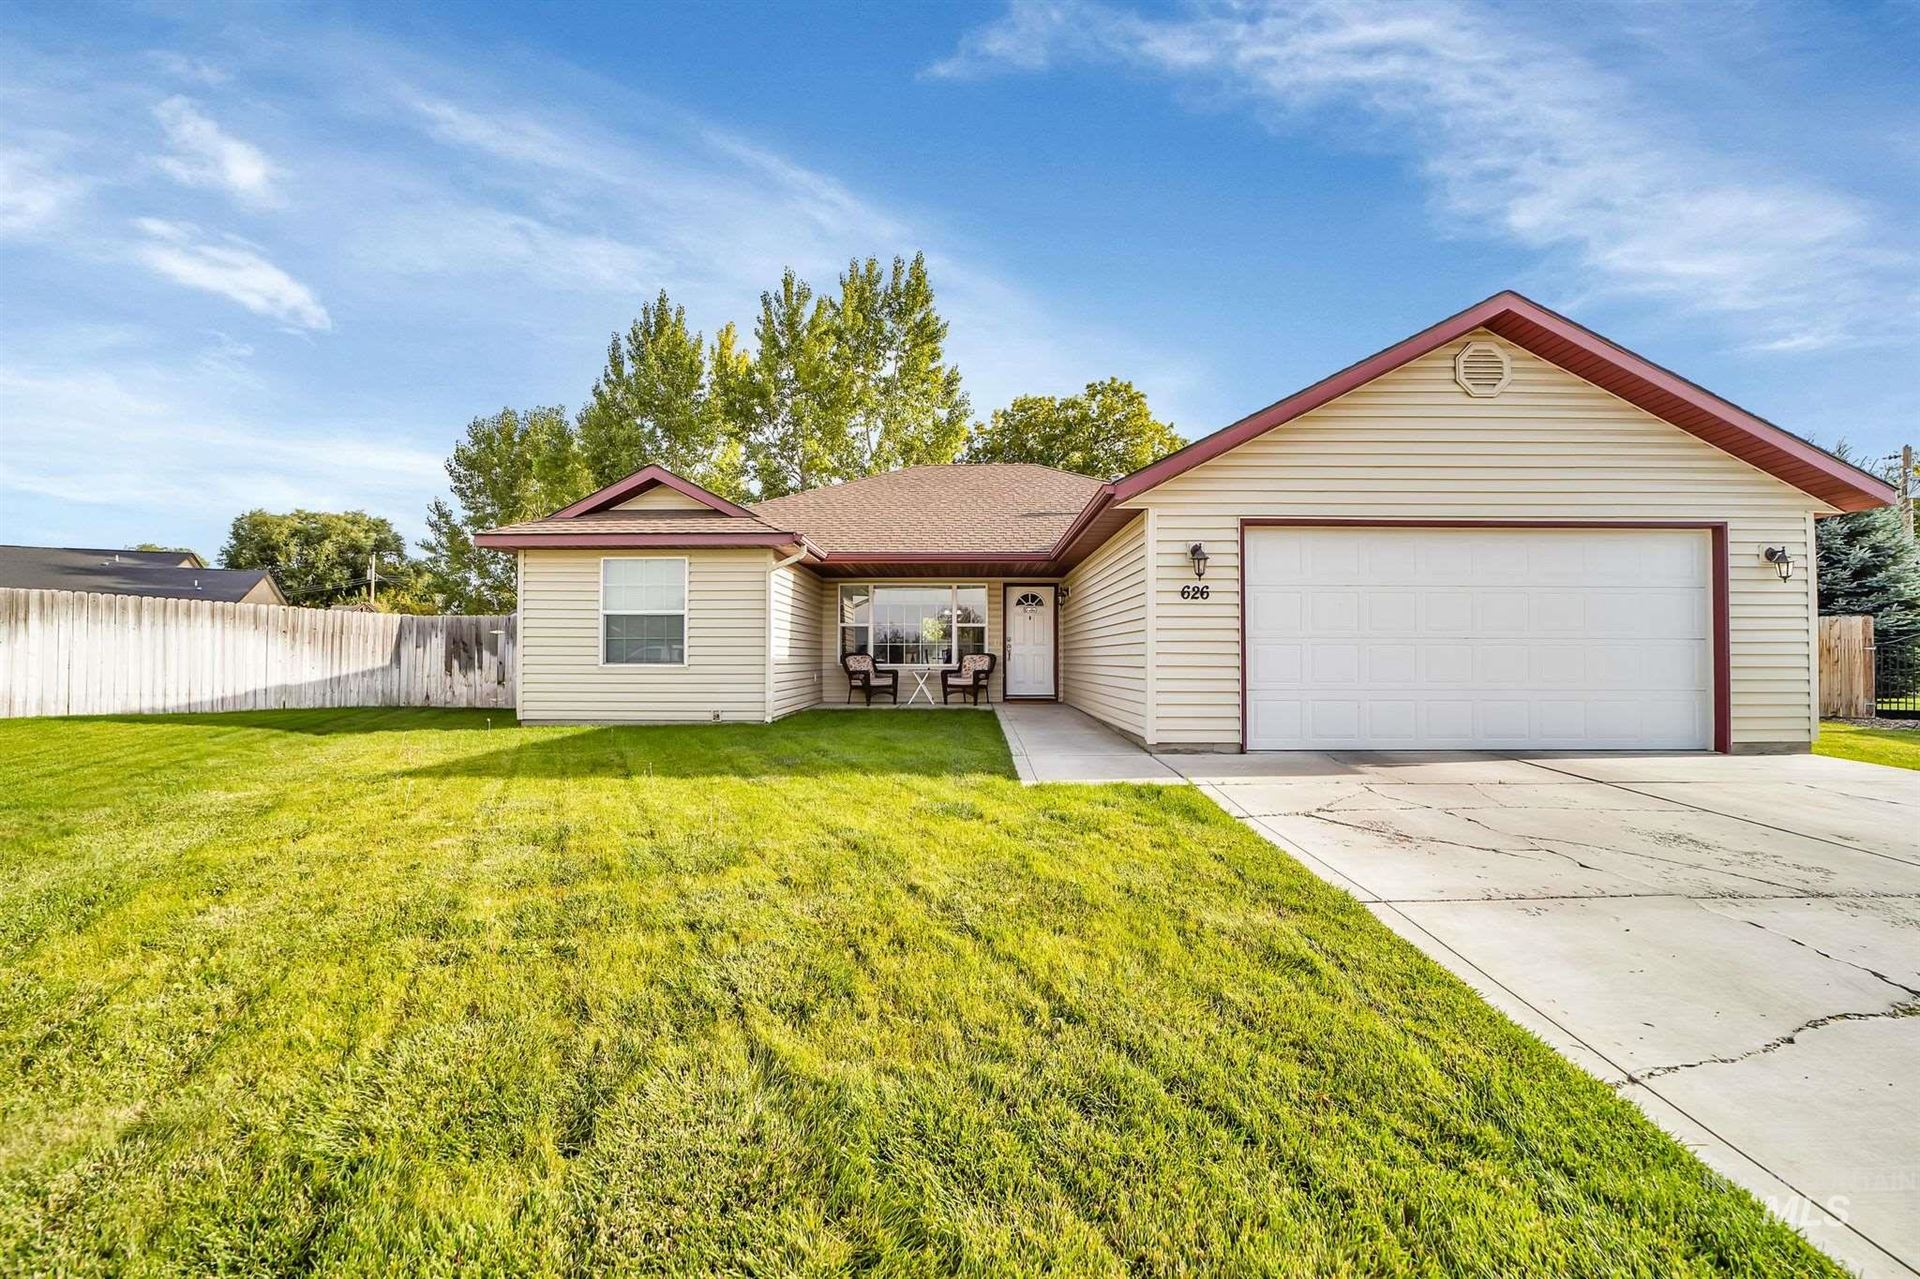 Photo of 626 Castlewood Drive, Twin Falls, ID 83301 (MLS # 98782232)